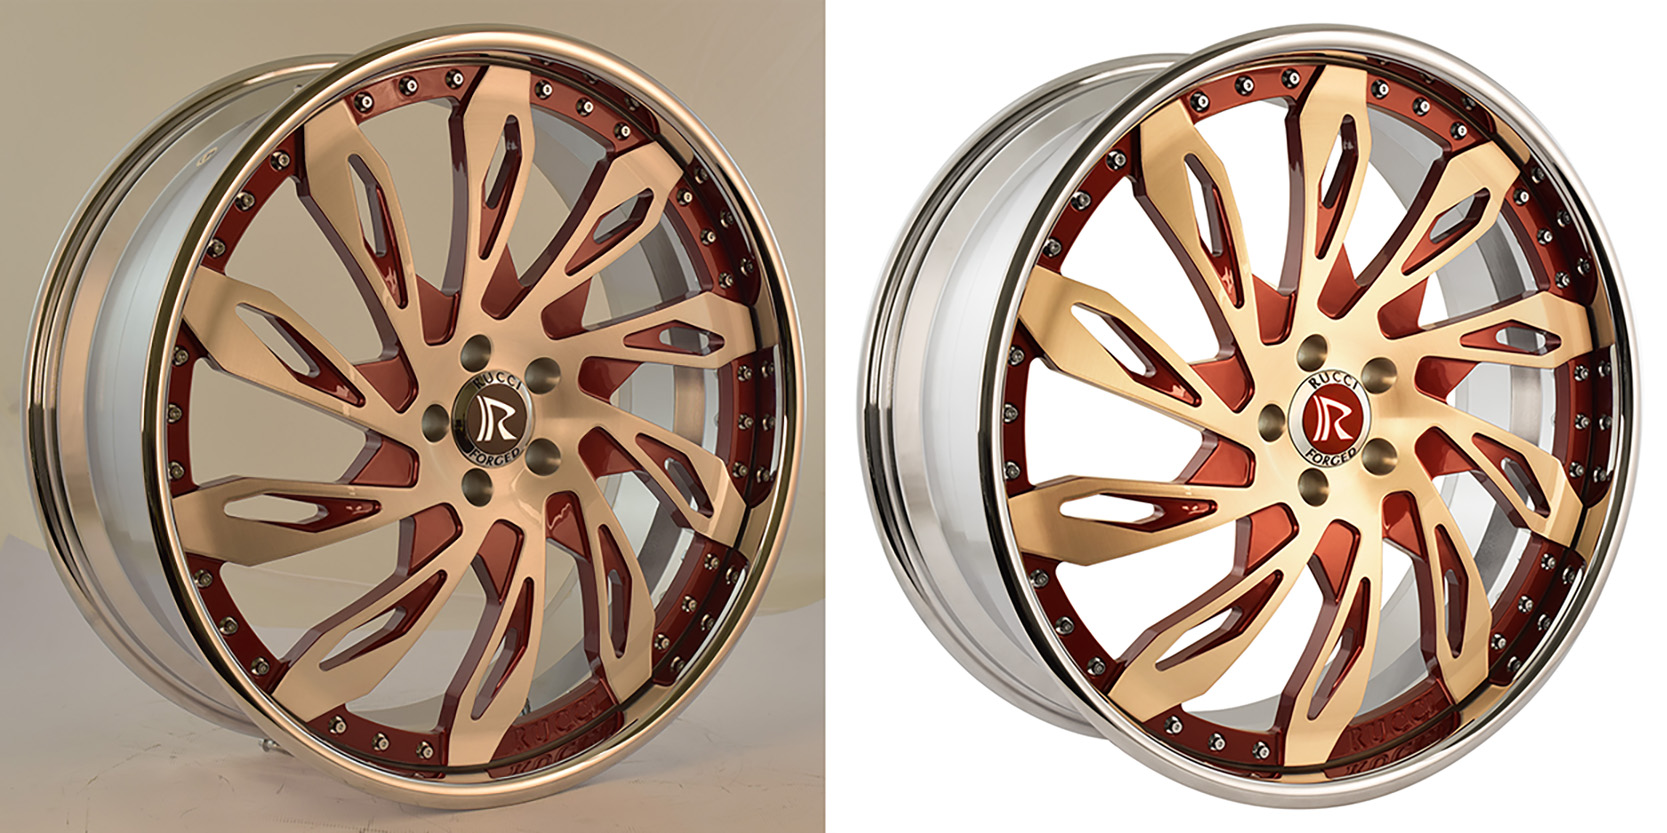 Product photo of a Rucci Forged Wheel - before and after